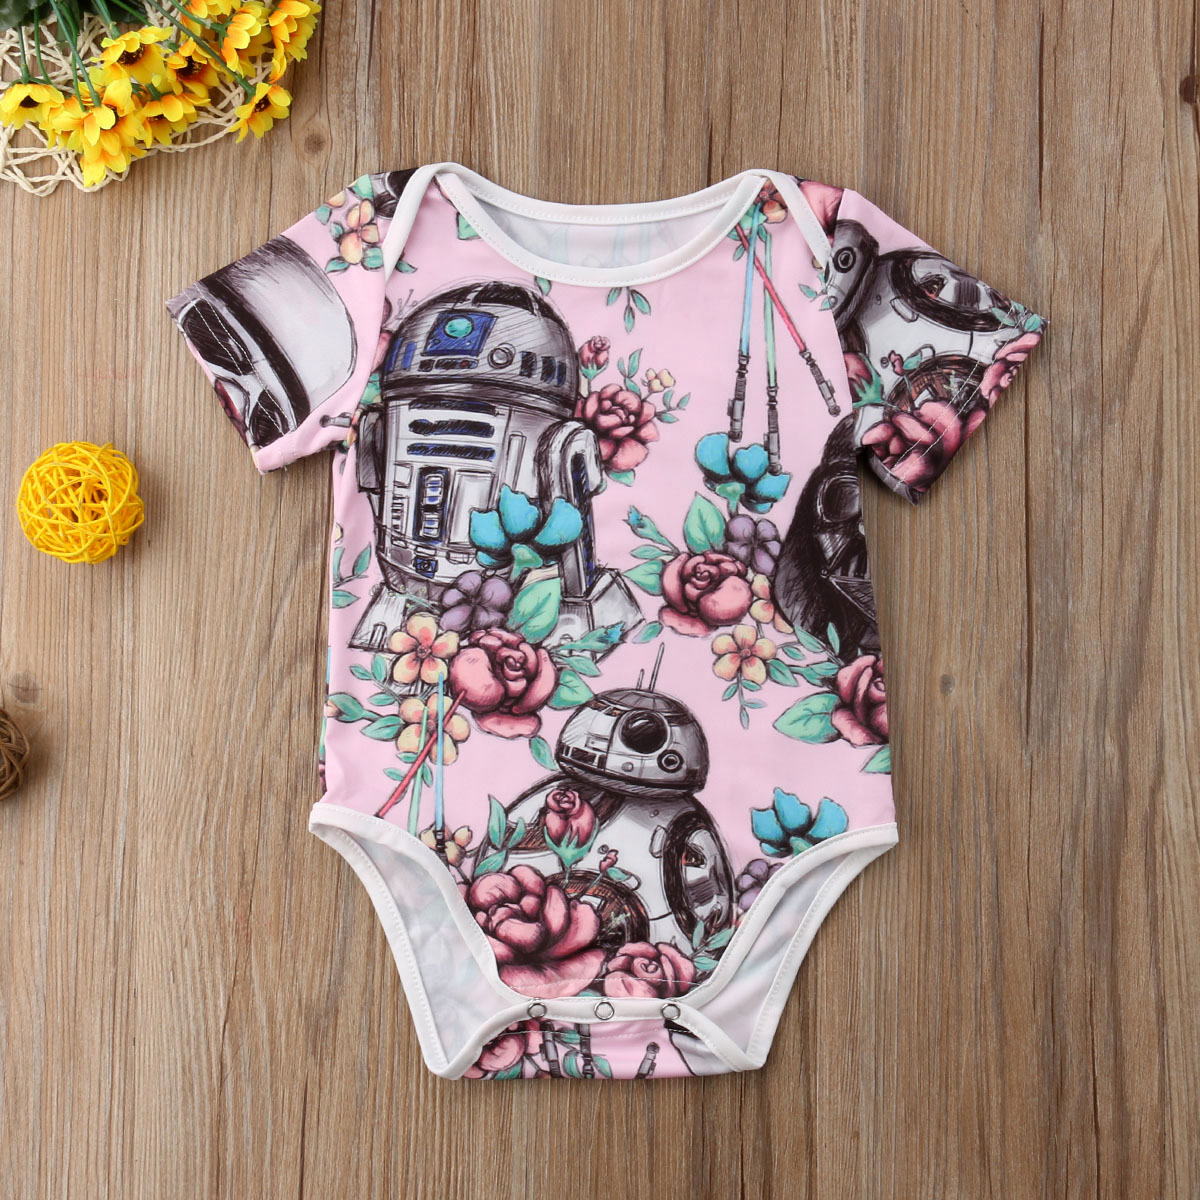 US Newborn Baby Girls Flower Clothes Short Sleeve Romper Stocking Cotton Outfit